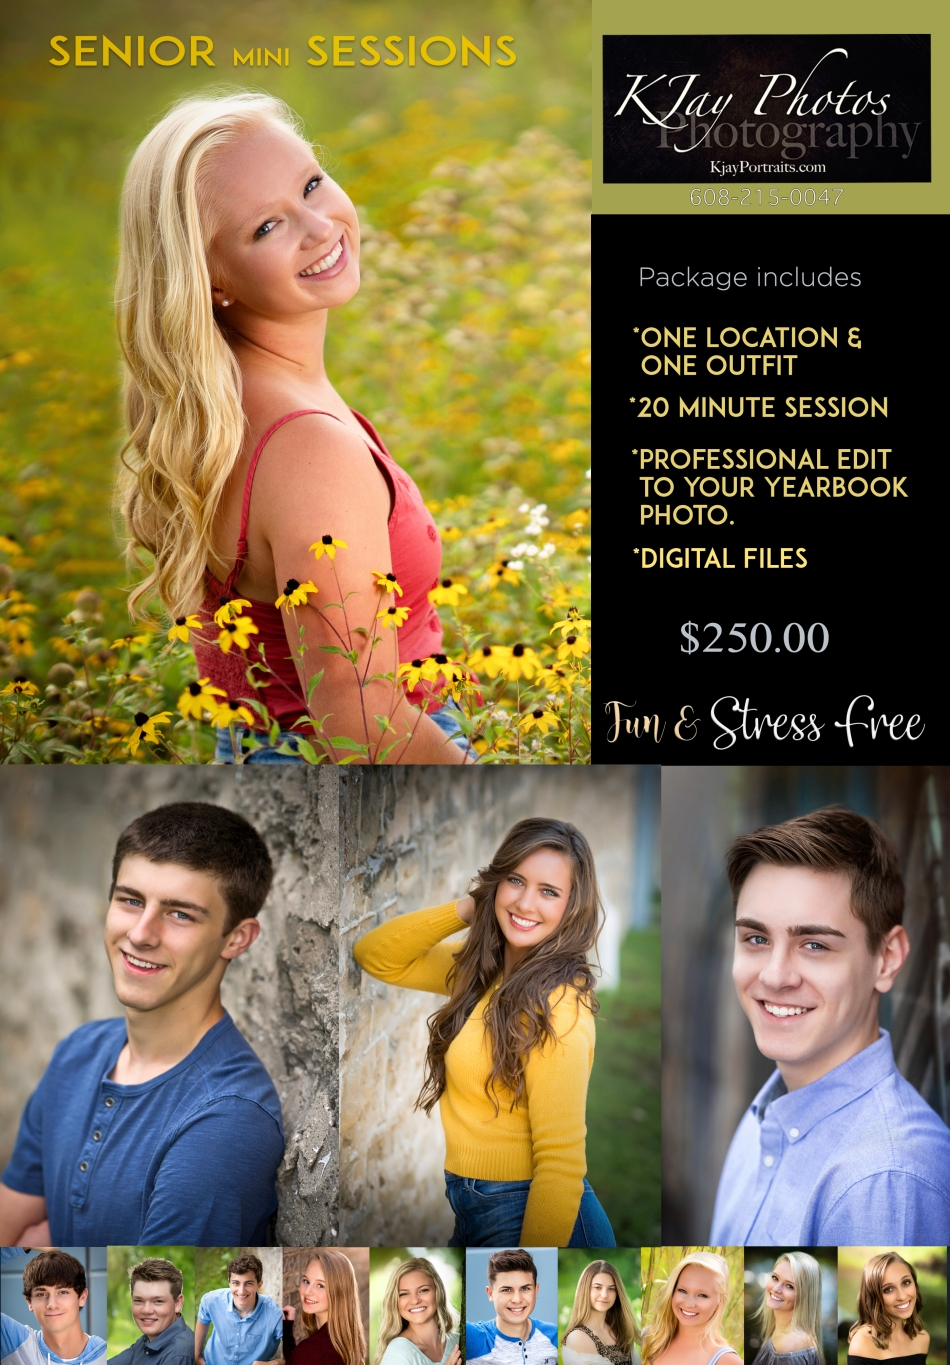 K Jay Photos affordable senior pictures. Madison, WI Photographer.